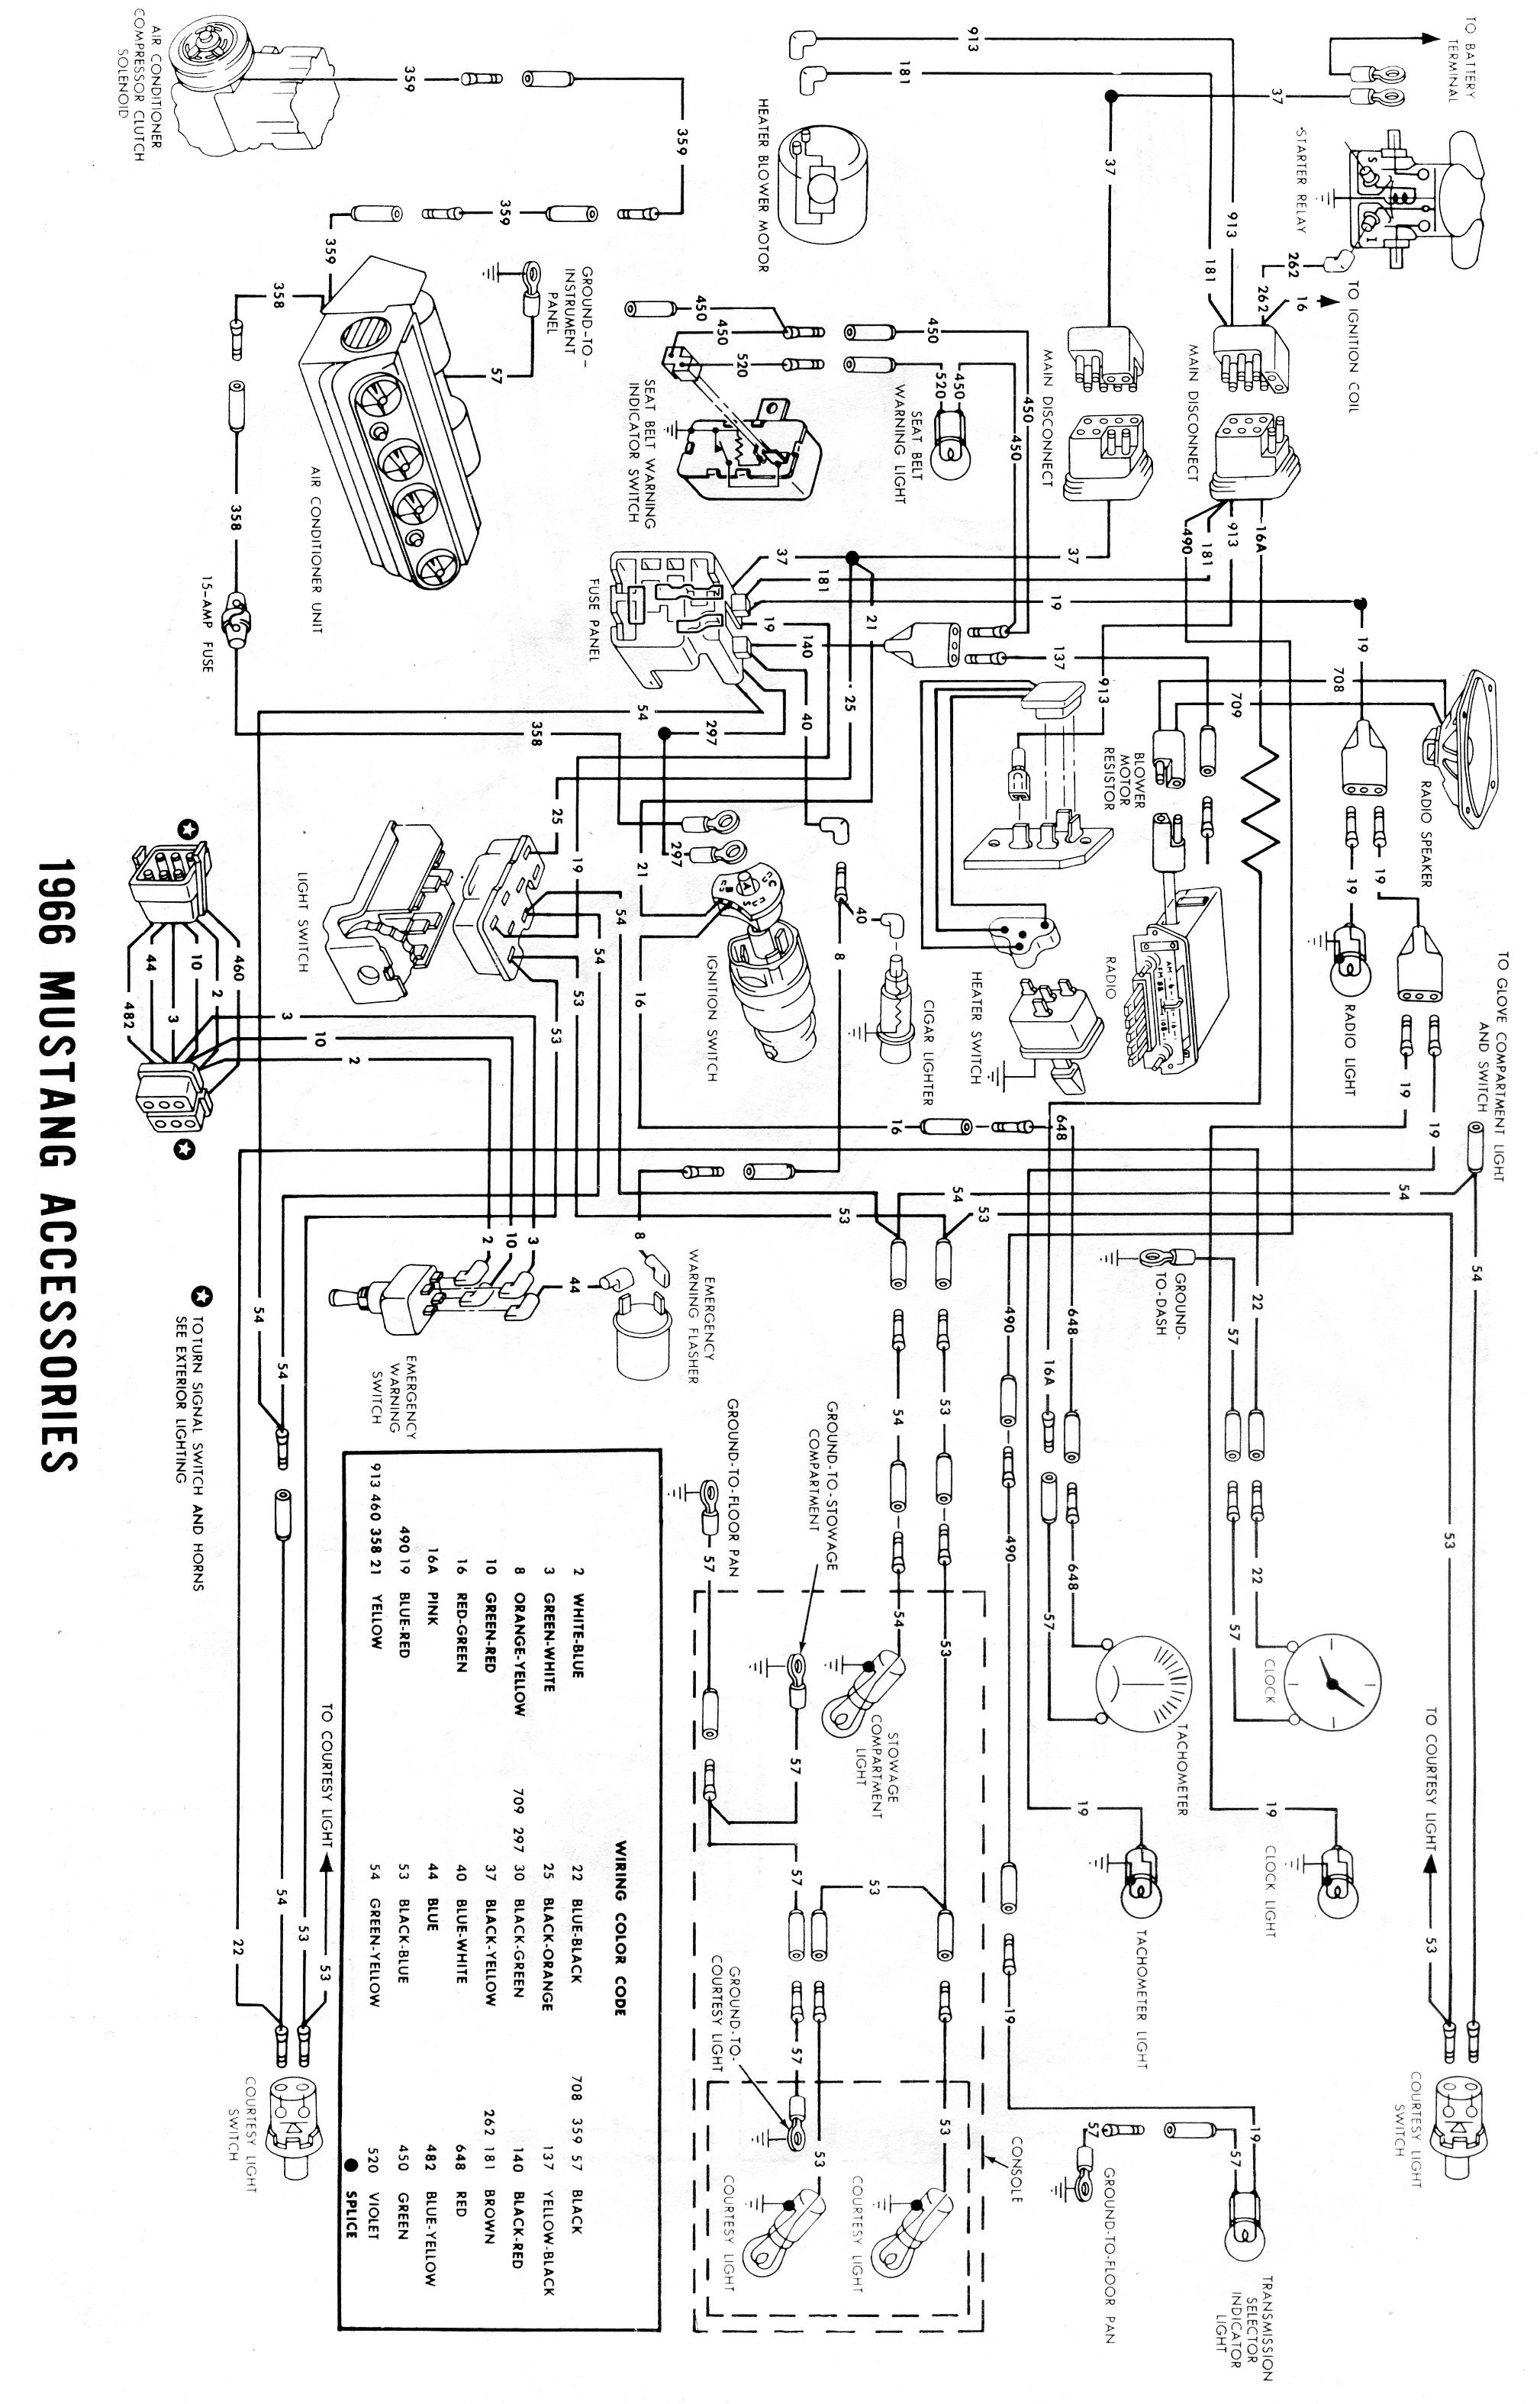 ignition wiring diagram mustang images 1966 ford mustang wiring diagram wiring diagrams and schematics